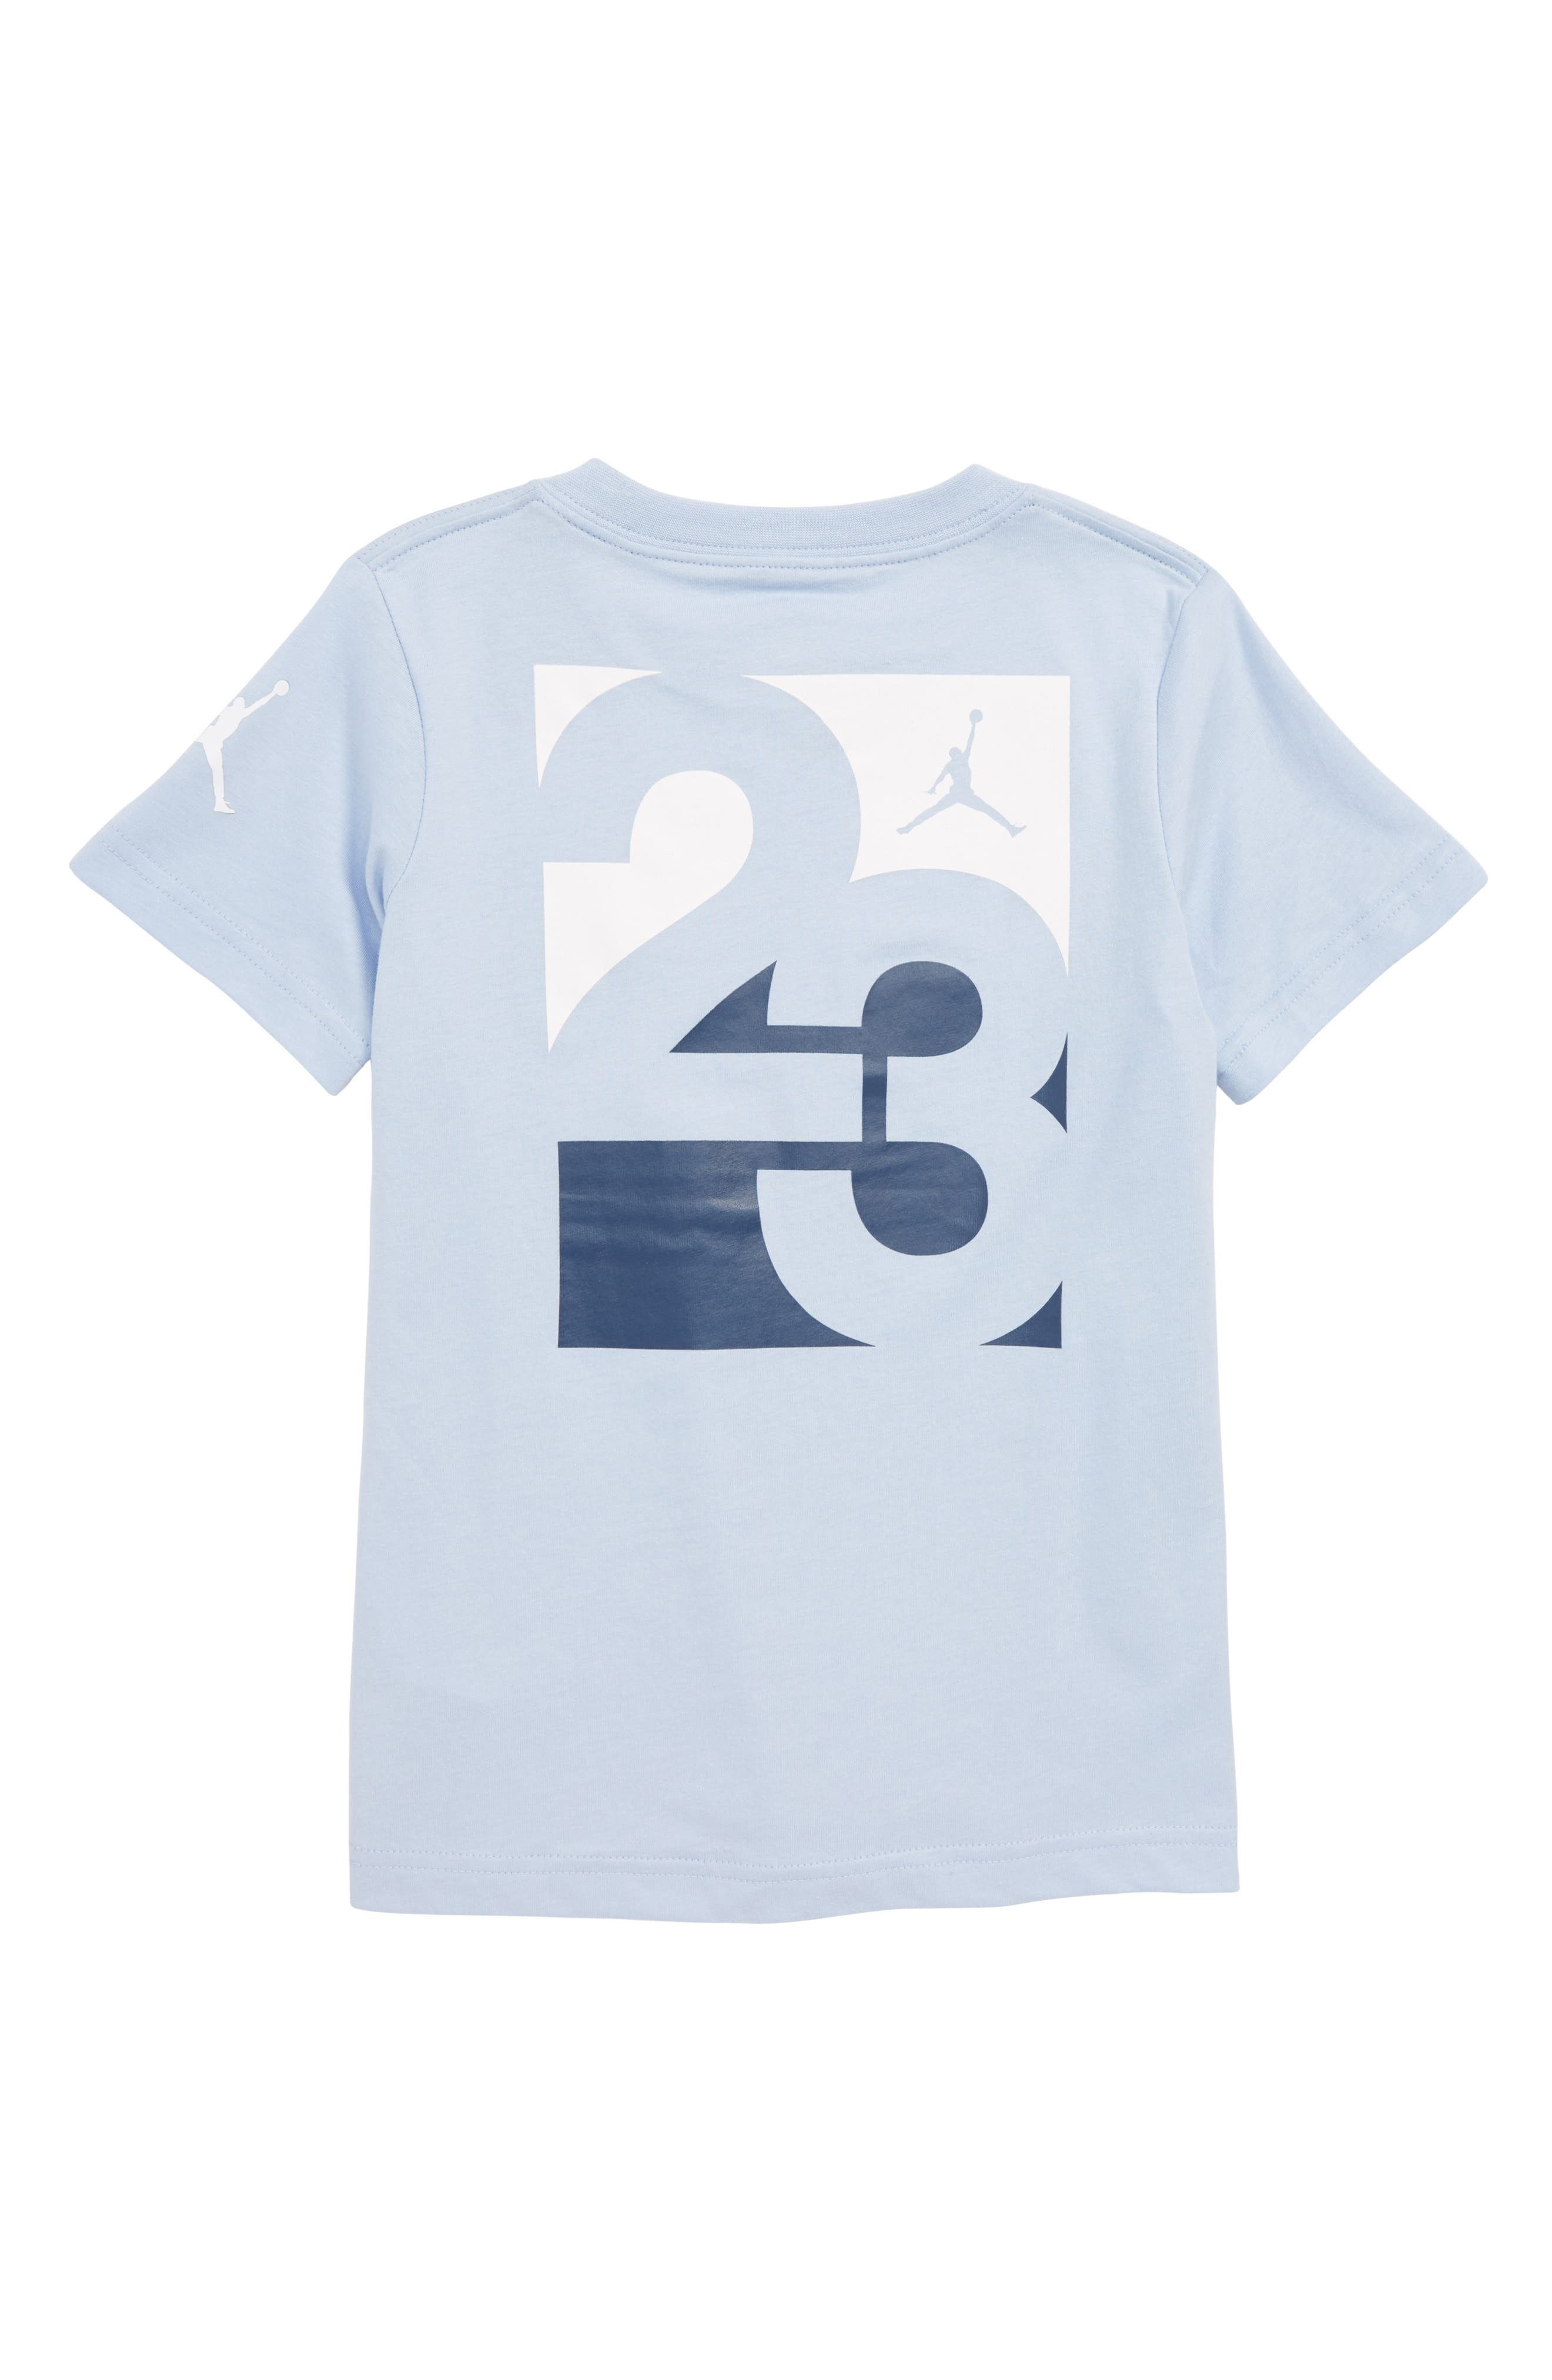 Racked Up Graphic T-Shirt,                             Alternate thumbnail 2, color,                             451